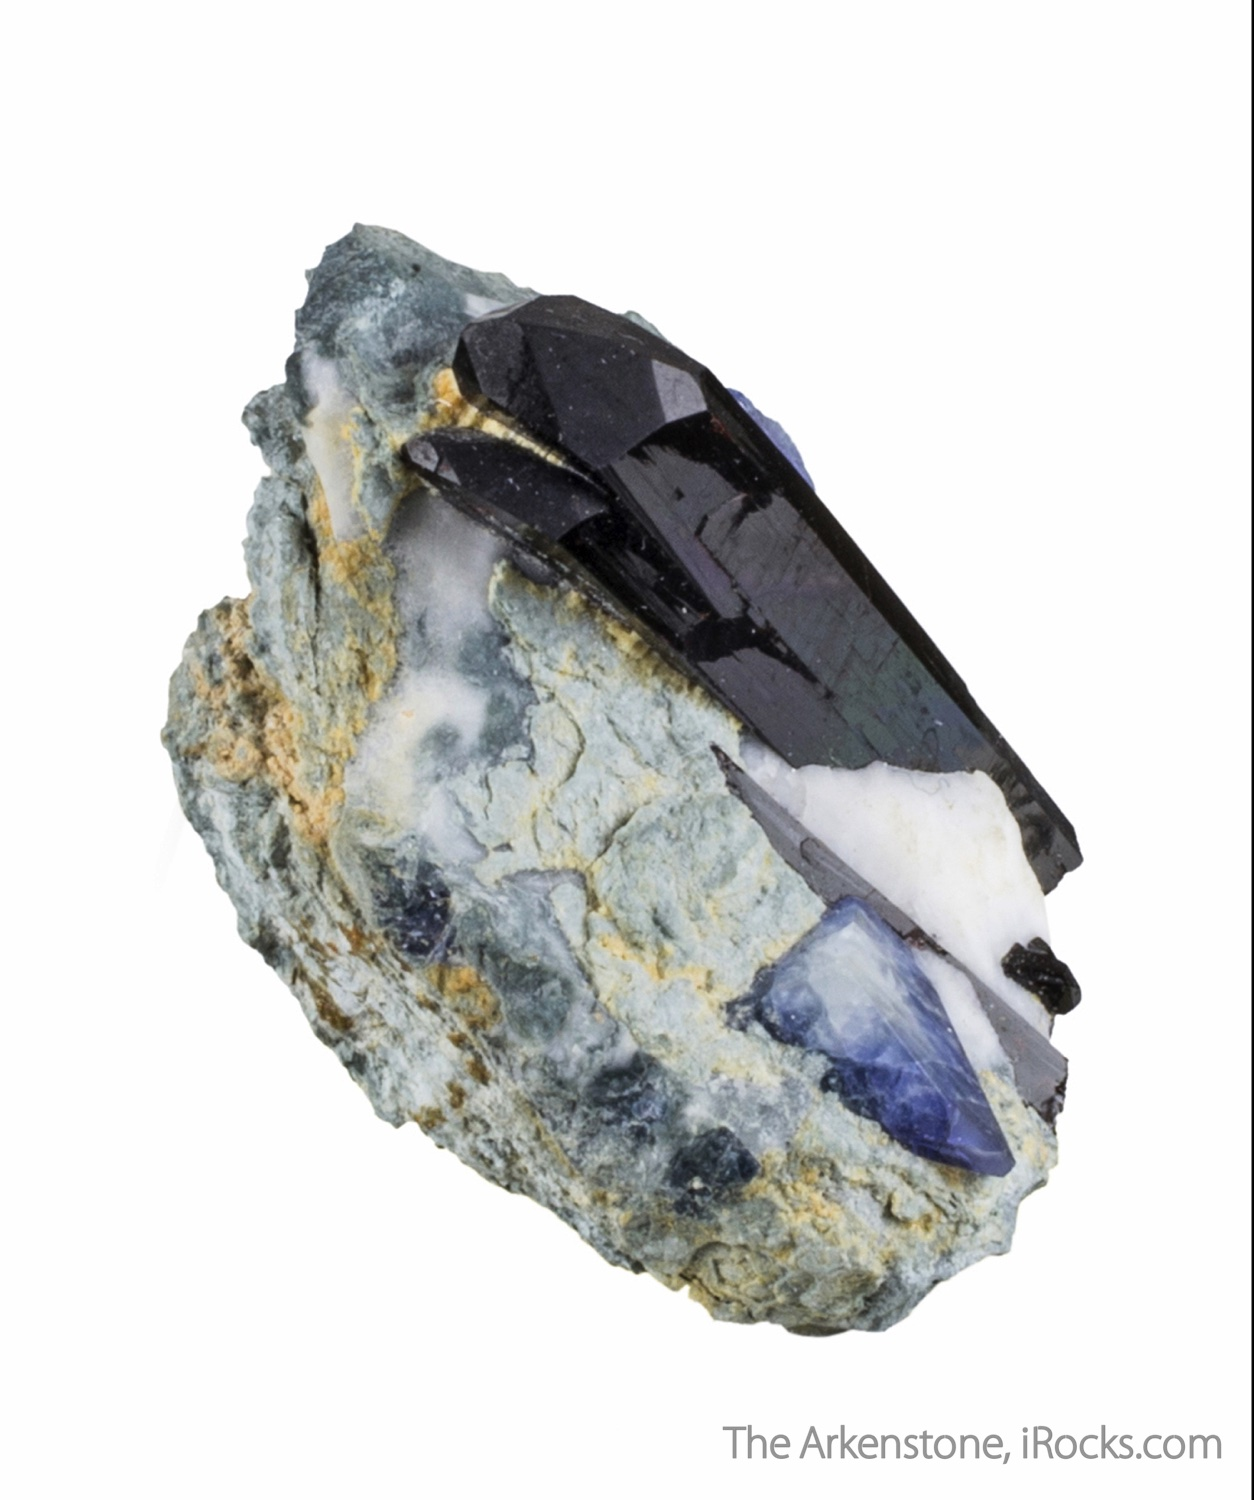 This exquisite miniature highlighted lustrous black crystal neptunite